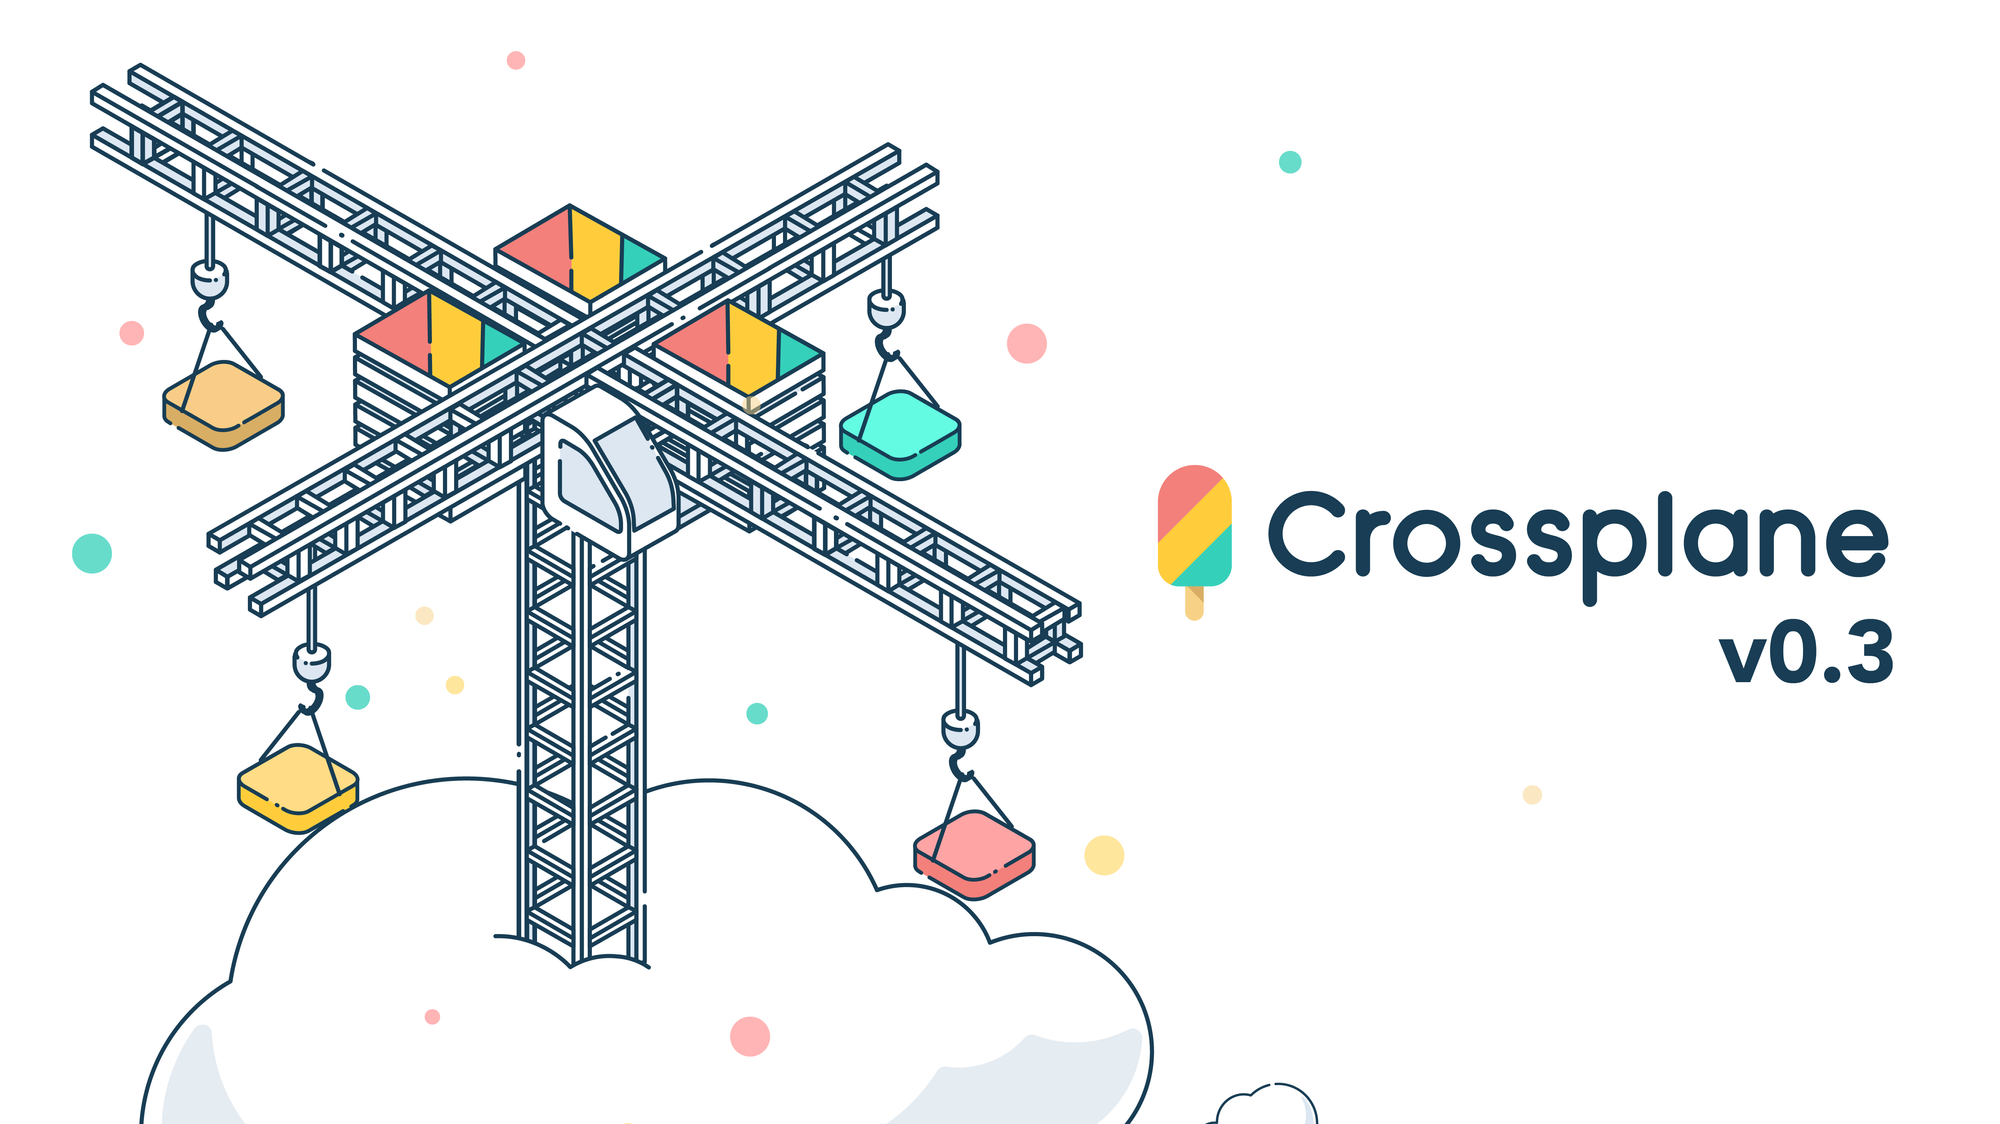 Crossplane v0.3 – accelerating support for more clouds and managed services